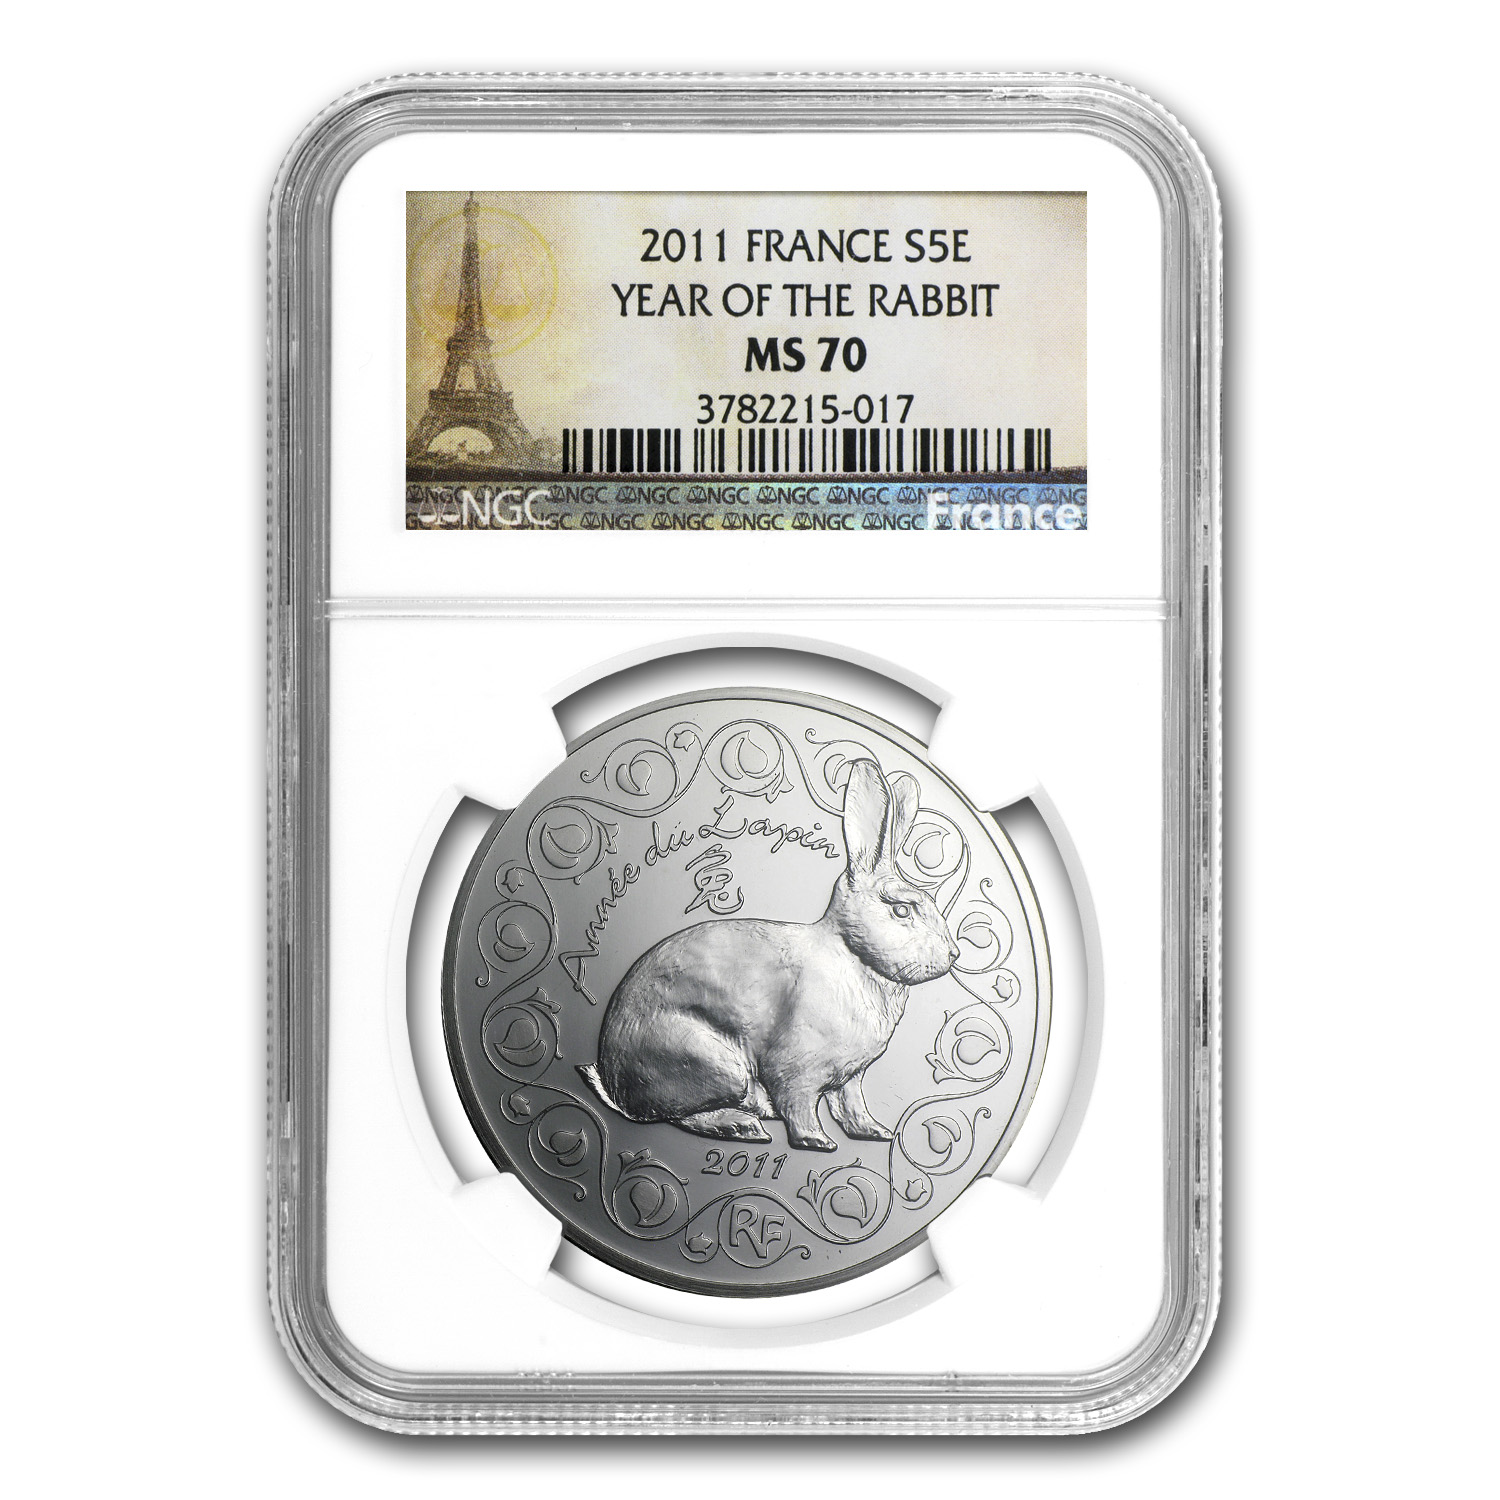 2011 France Silver €5 Year of the Rabbit MS-70 NGC (Lunar Series)